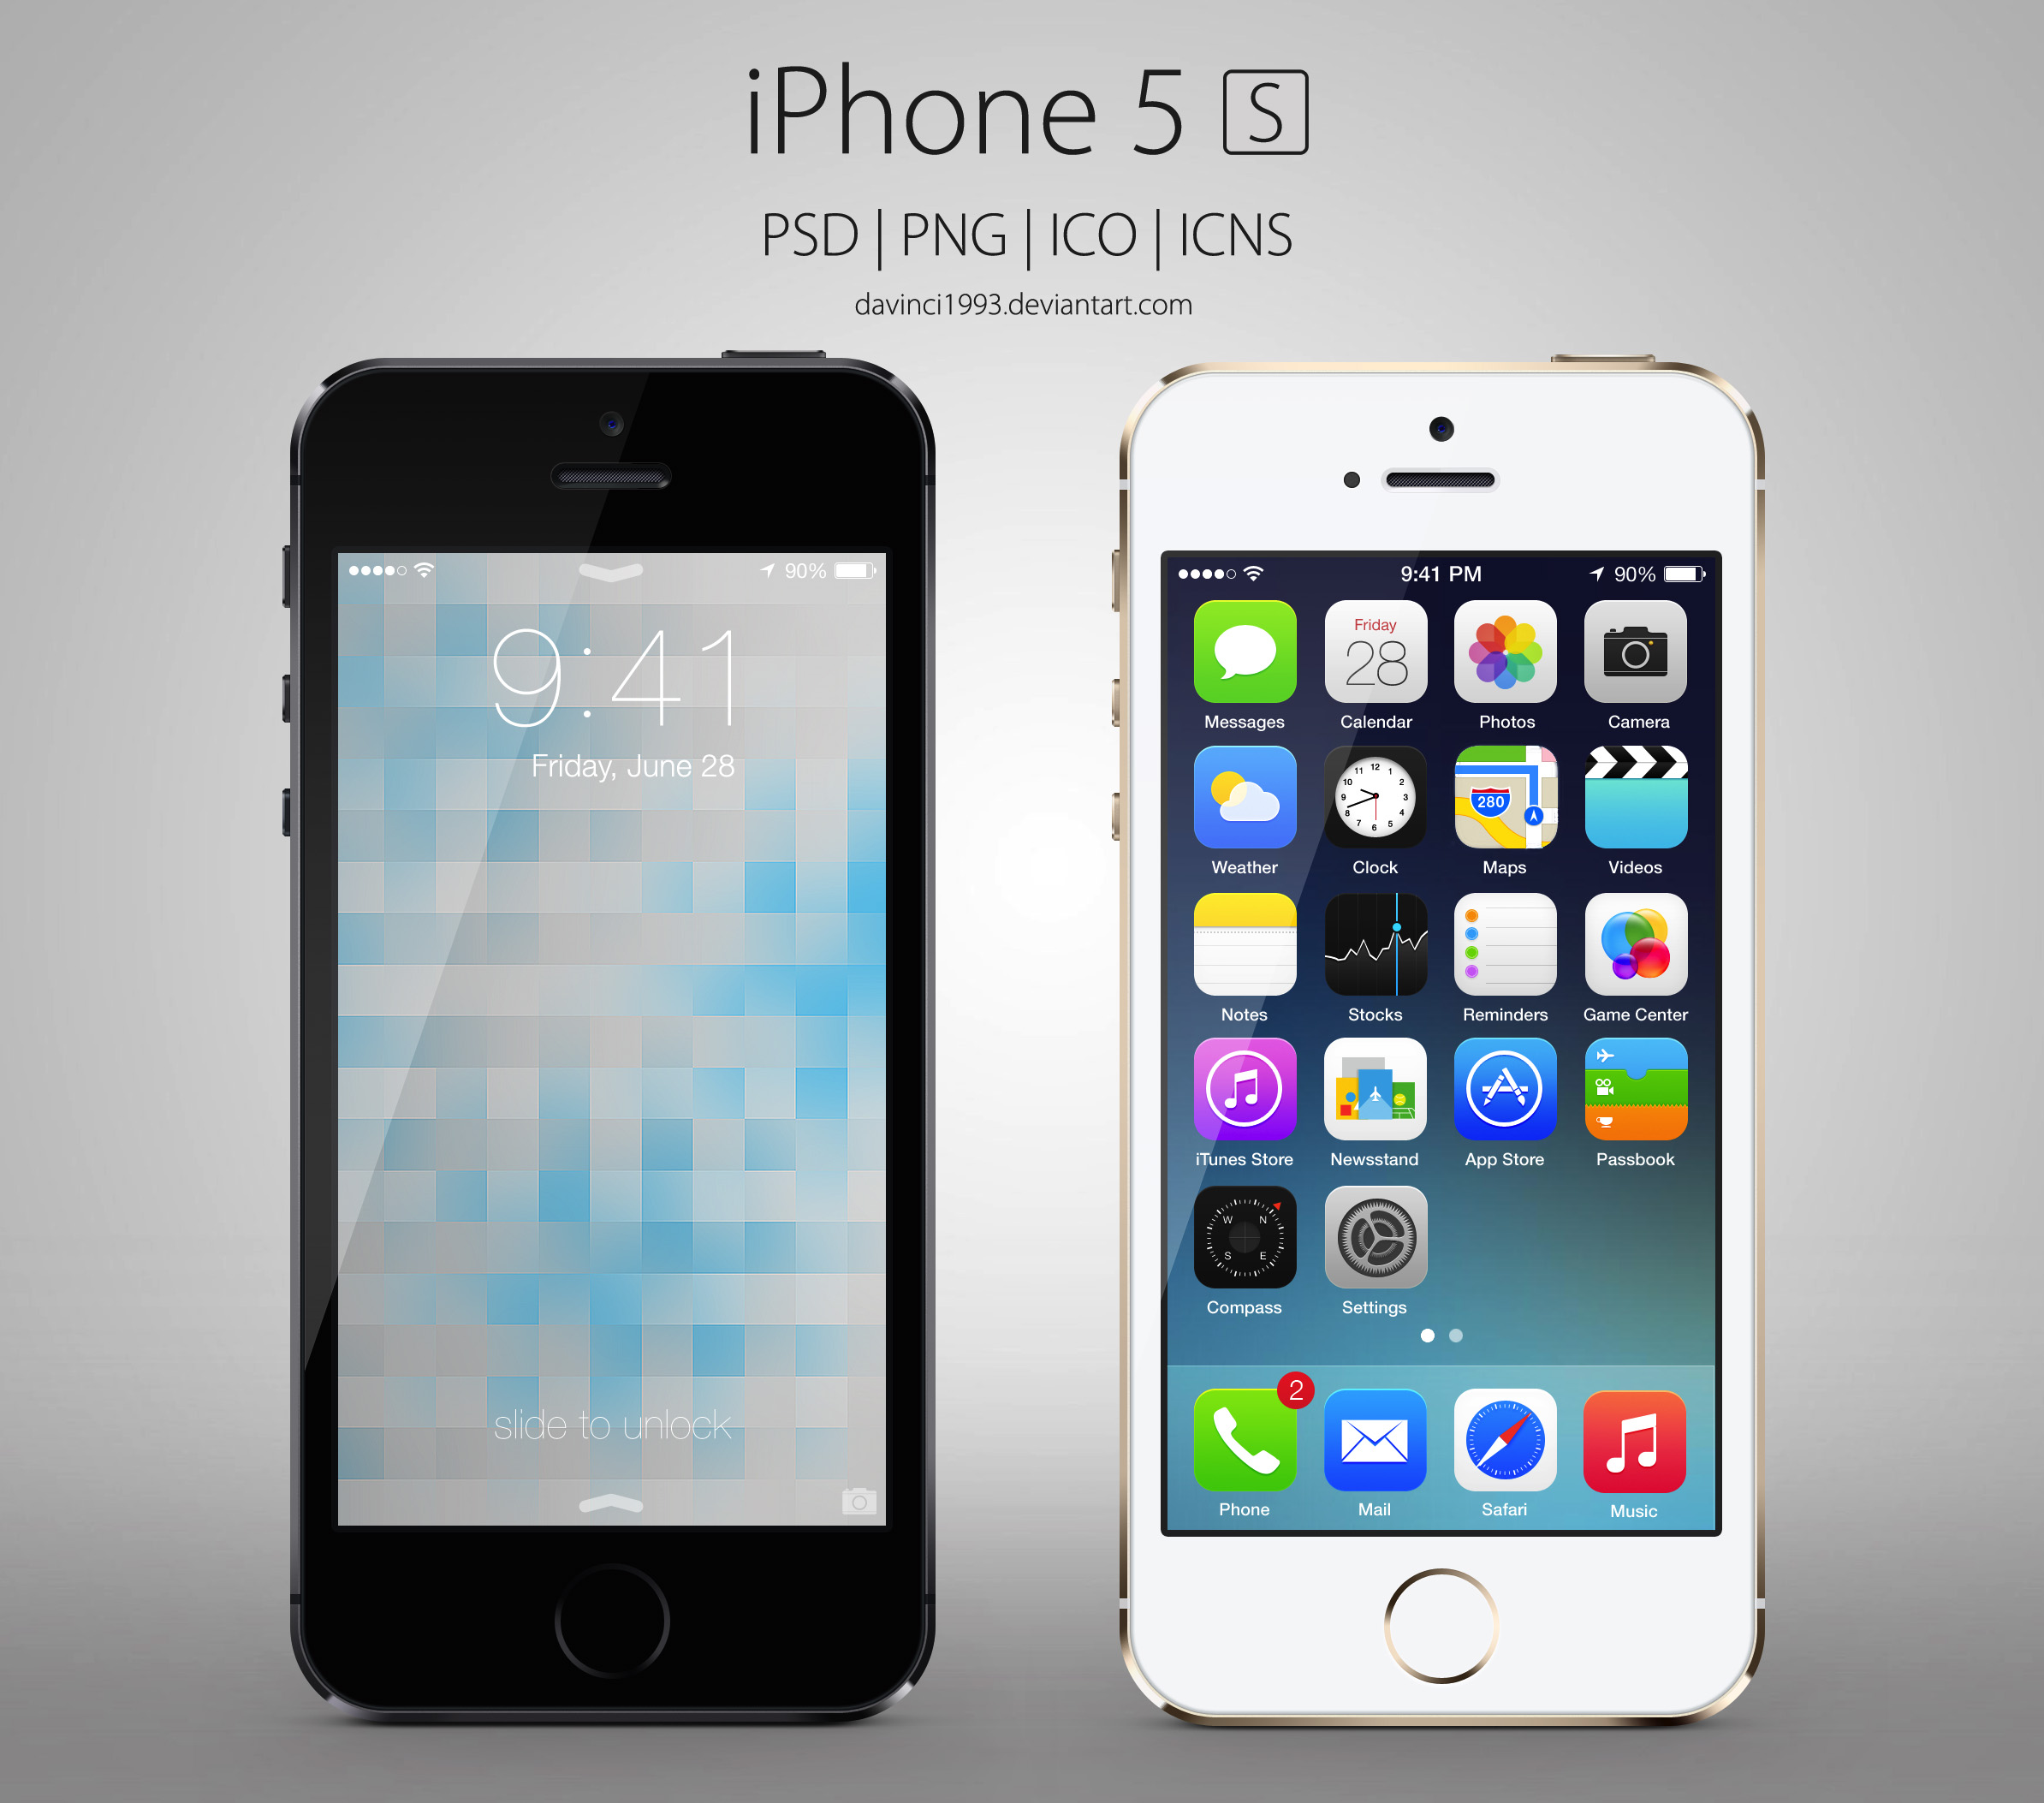 Iphone 5s – produsul a 6 ani de evolutie constanta marca iPhone